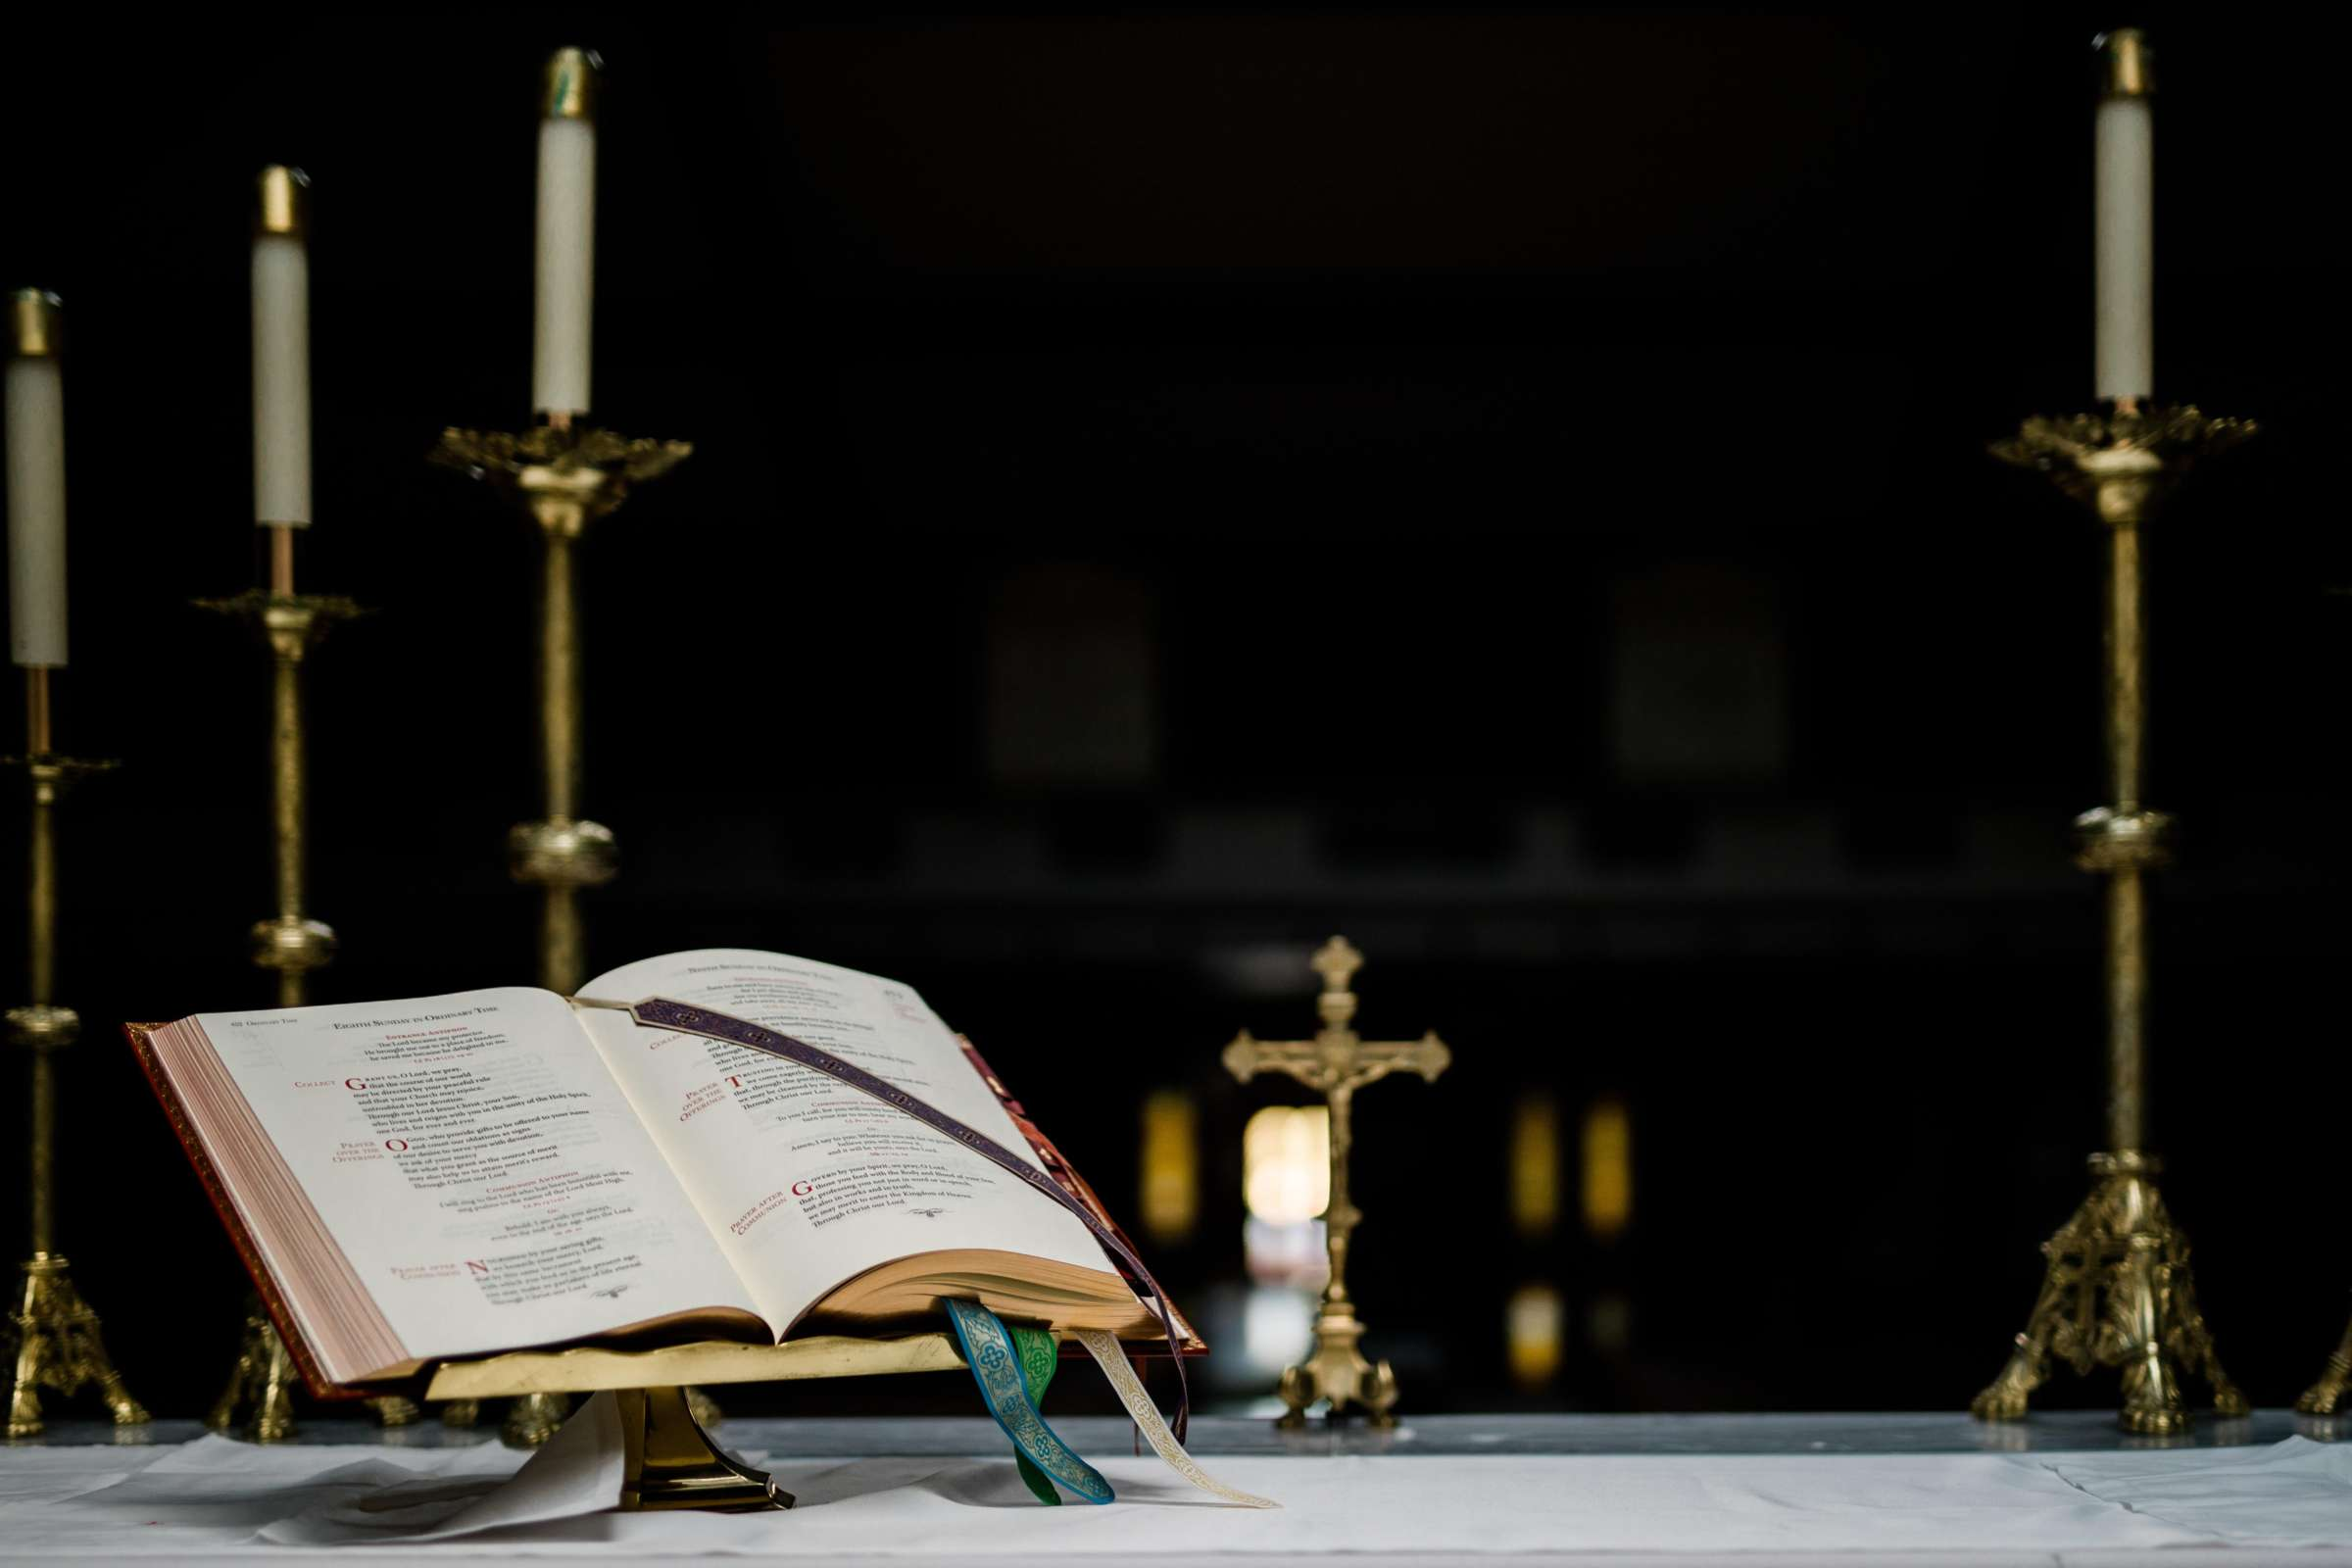 Christianity The Apocrypha - neglected treasures?